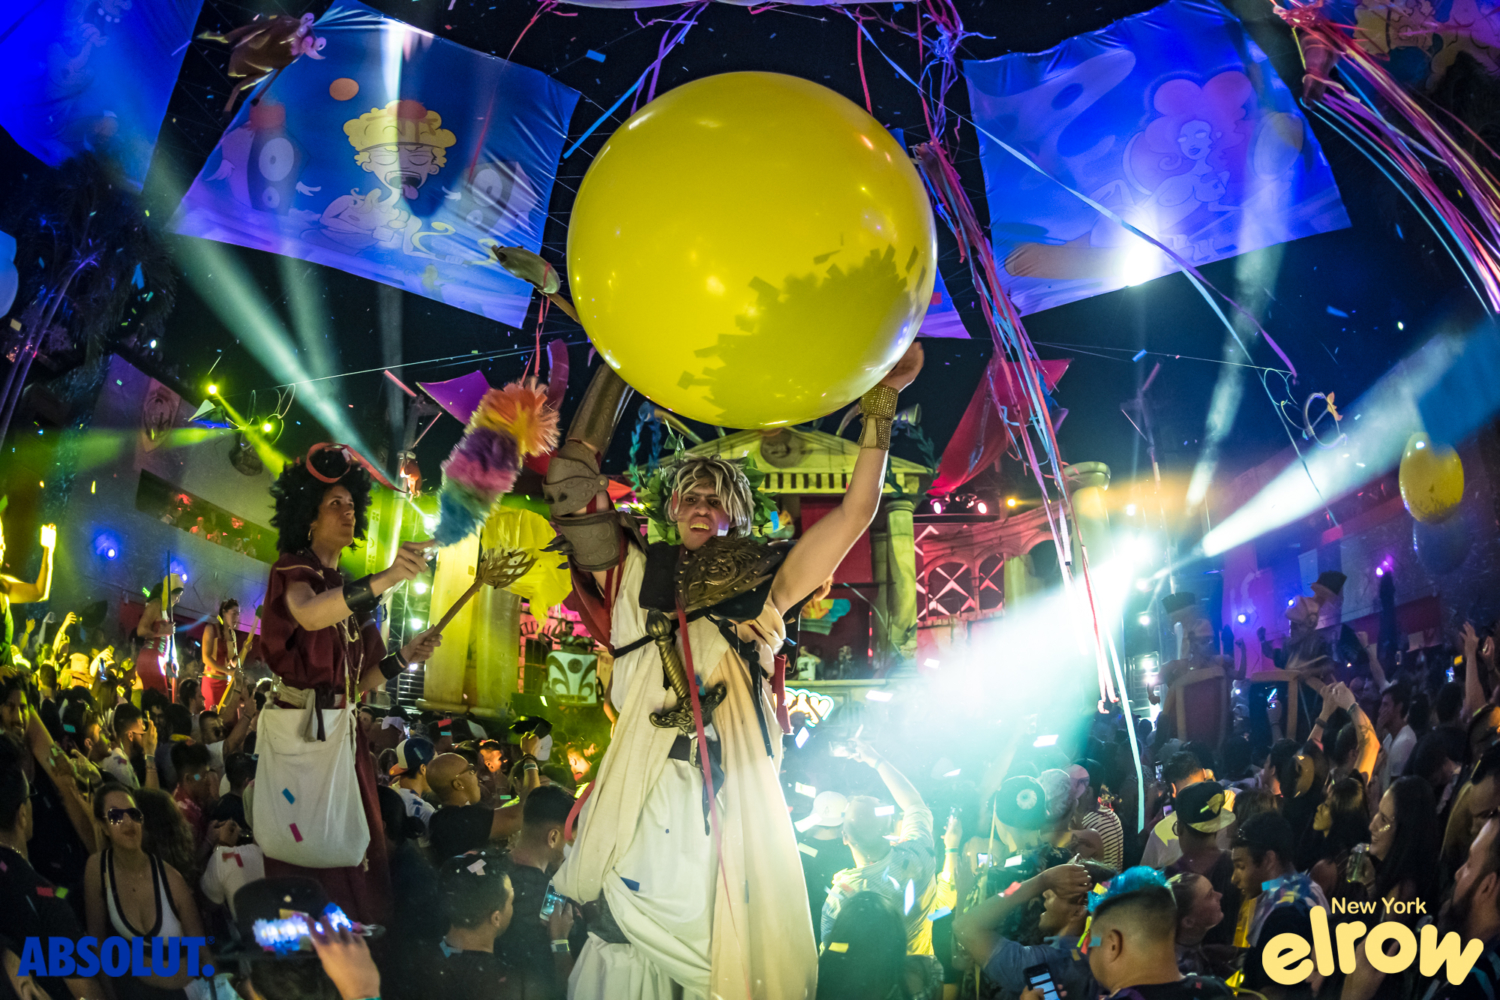 Making magic happen at Elrow Open Air – photos by aLIVE coverageELROW2018 0728 212230 9372 ALIVECOVERAGE